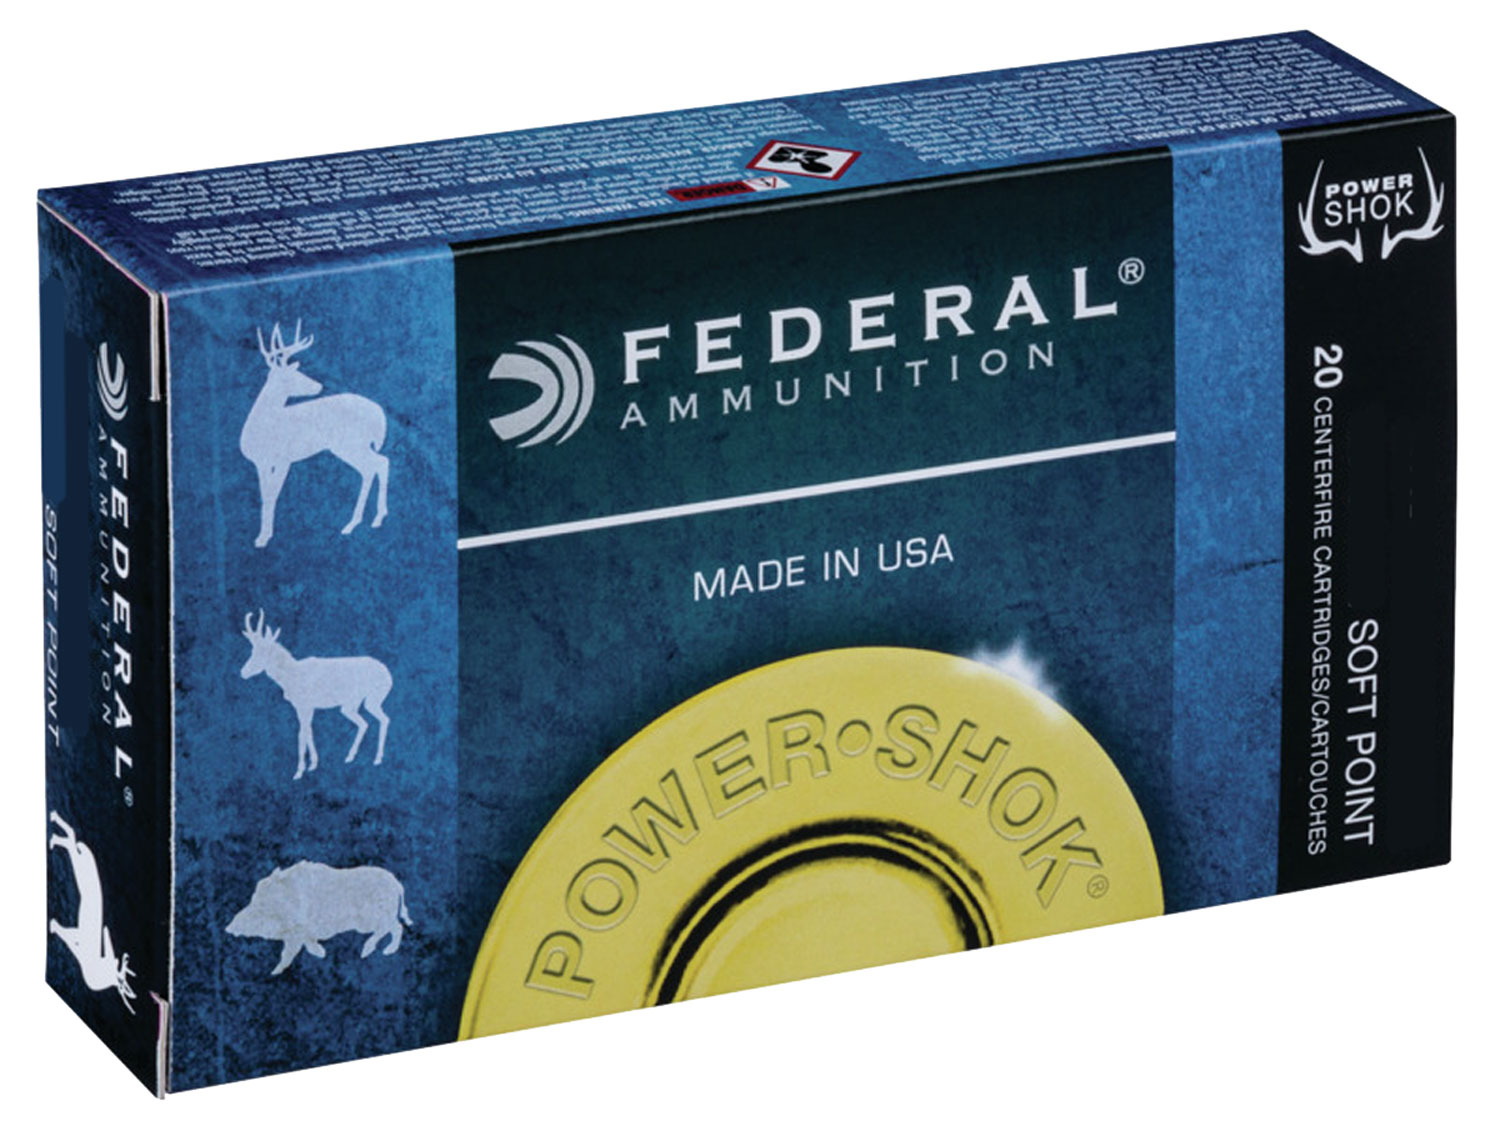 Federal 300WDT180 Non-Typical Whitetail  300 Winchester Magnum 180 GR Soft Point 20 Bx/ 10 Cs